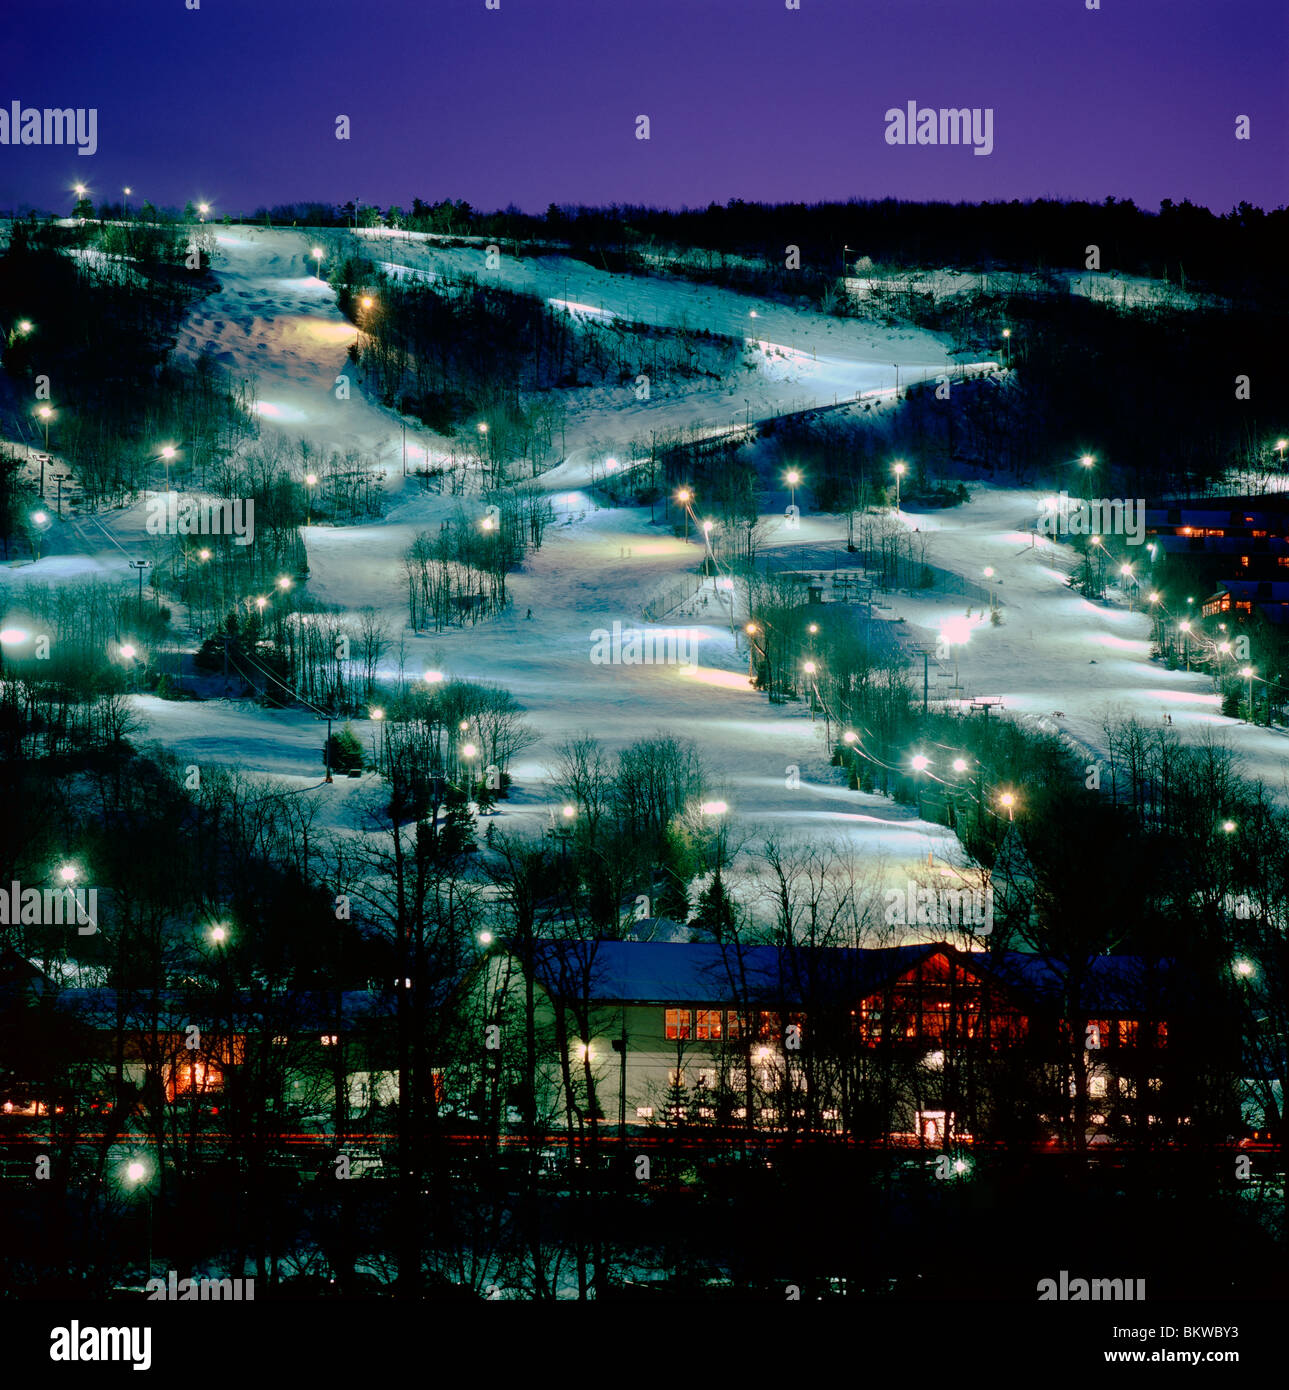 camelback mountain resort in the pocono mountains, near tannersville